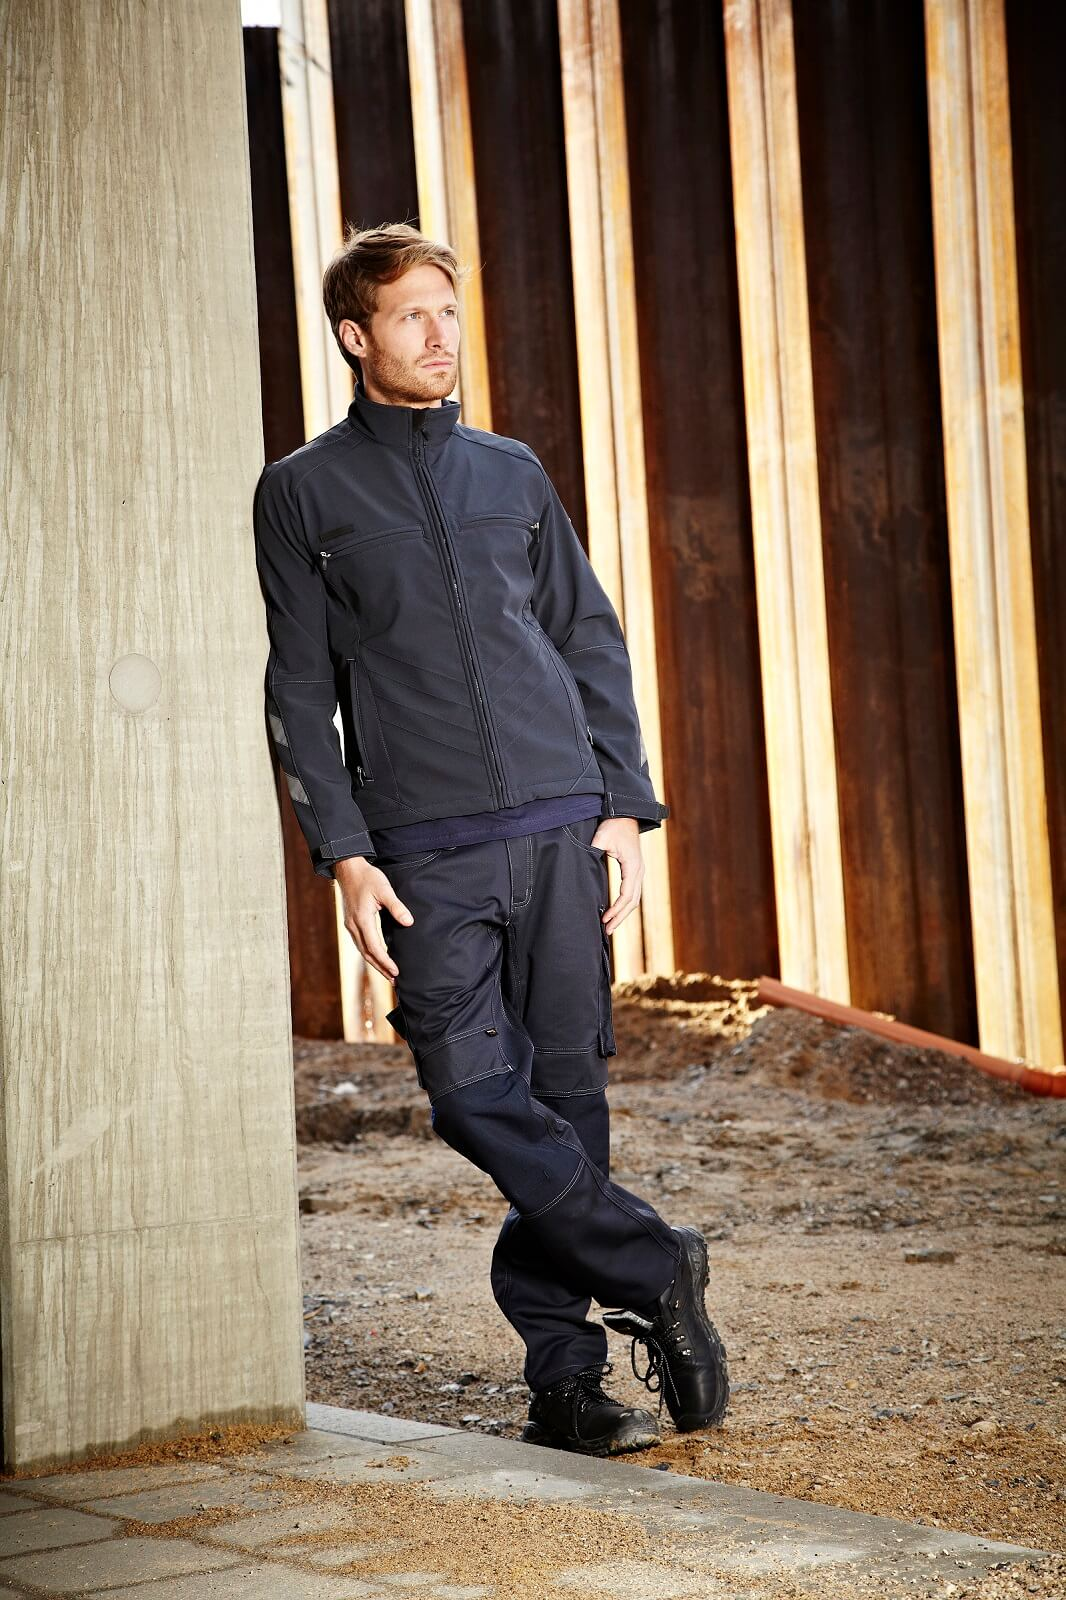 Softshell Jacket & Work Trousers - Navy - Environment - MASCOT® UNIQUE